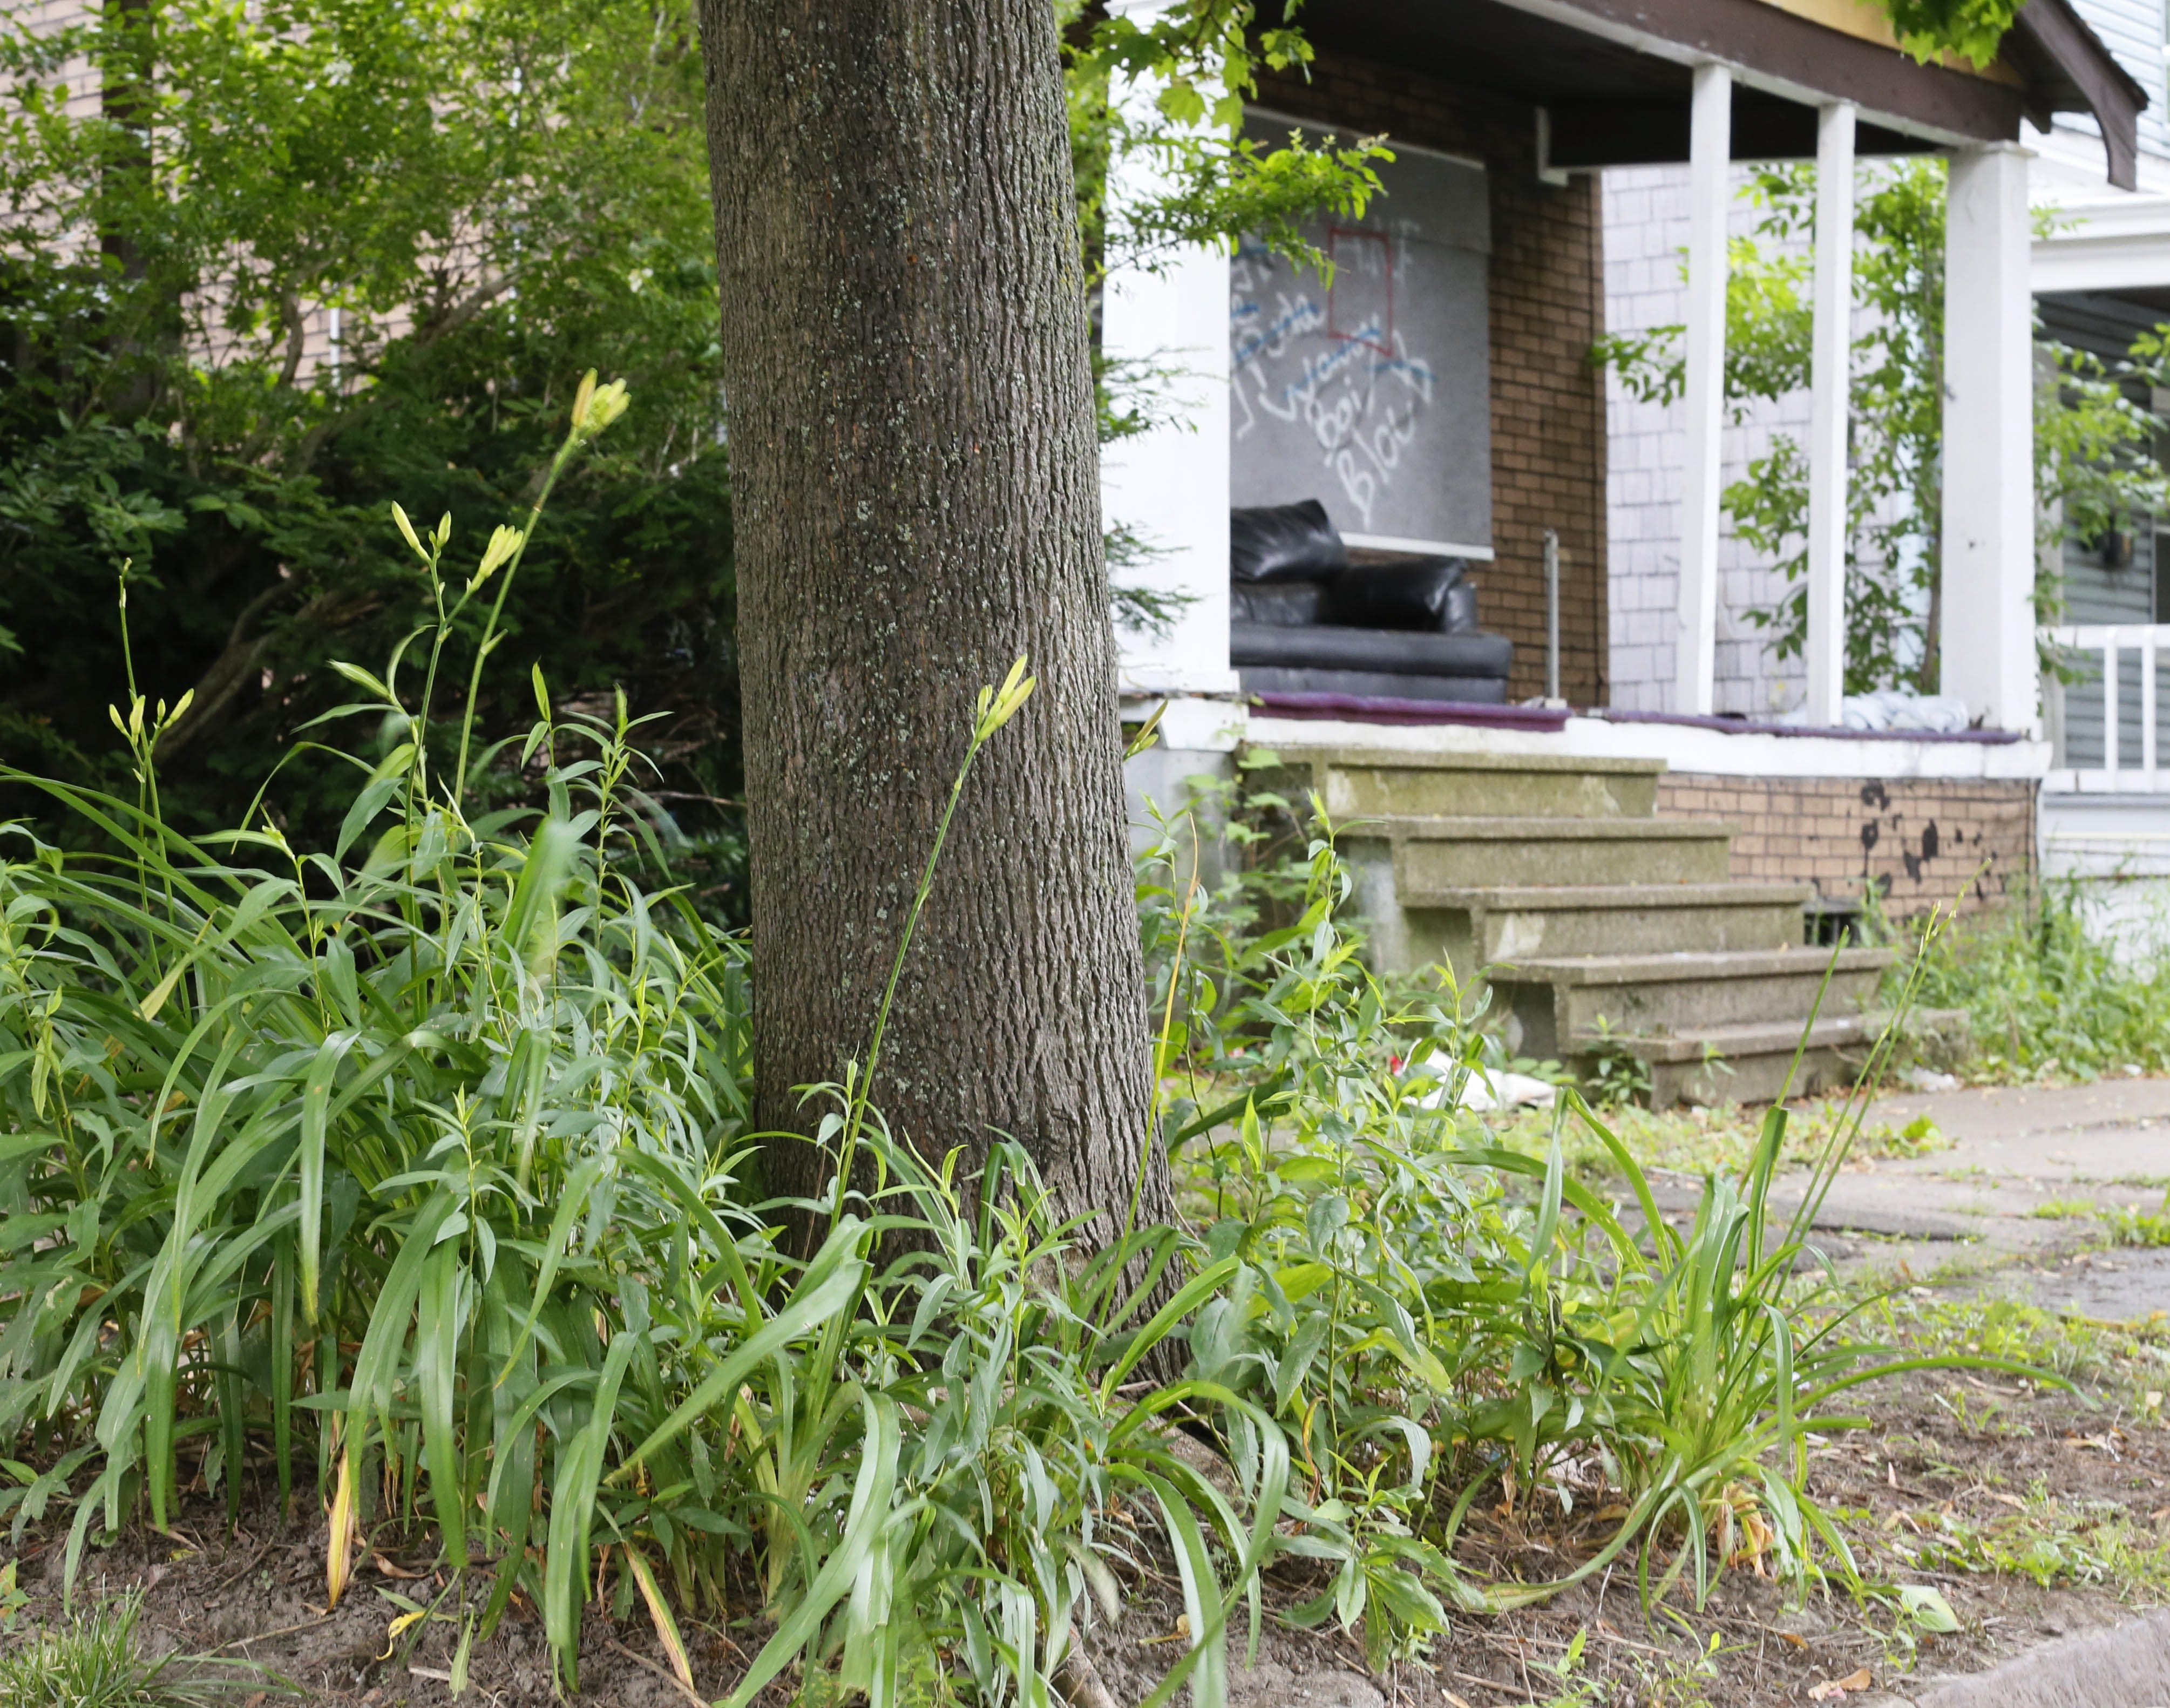 St. Joseph Avenue resident Clare Felsman was ticketed for these lilies planted around the tree in her front yard. Meanwhile, the city-owned house next door – in background – is vacant, boarded up and covered in graffiti.